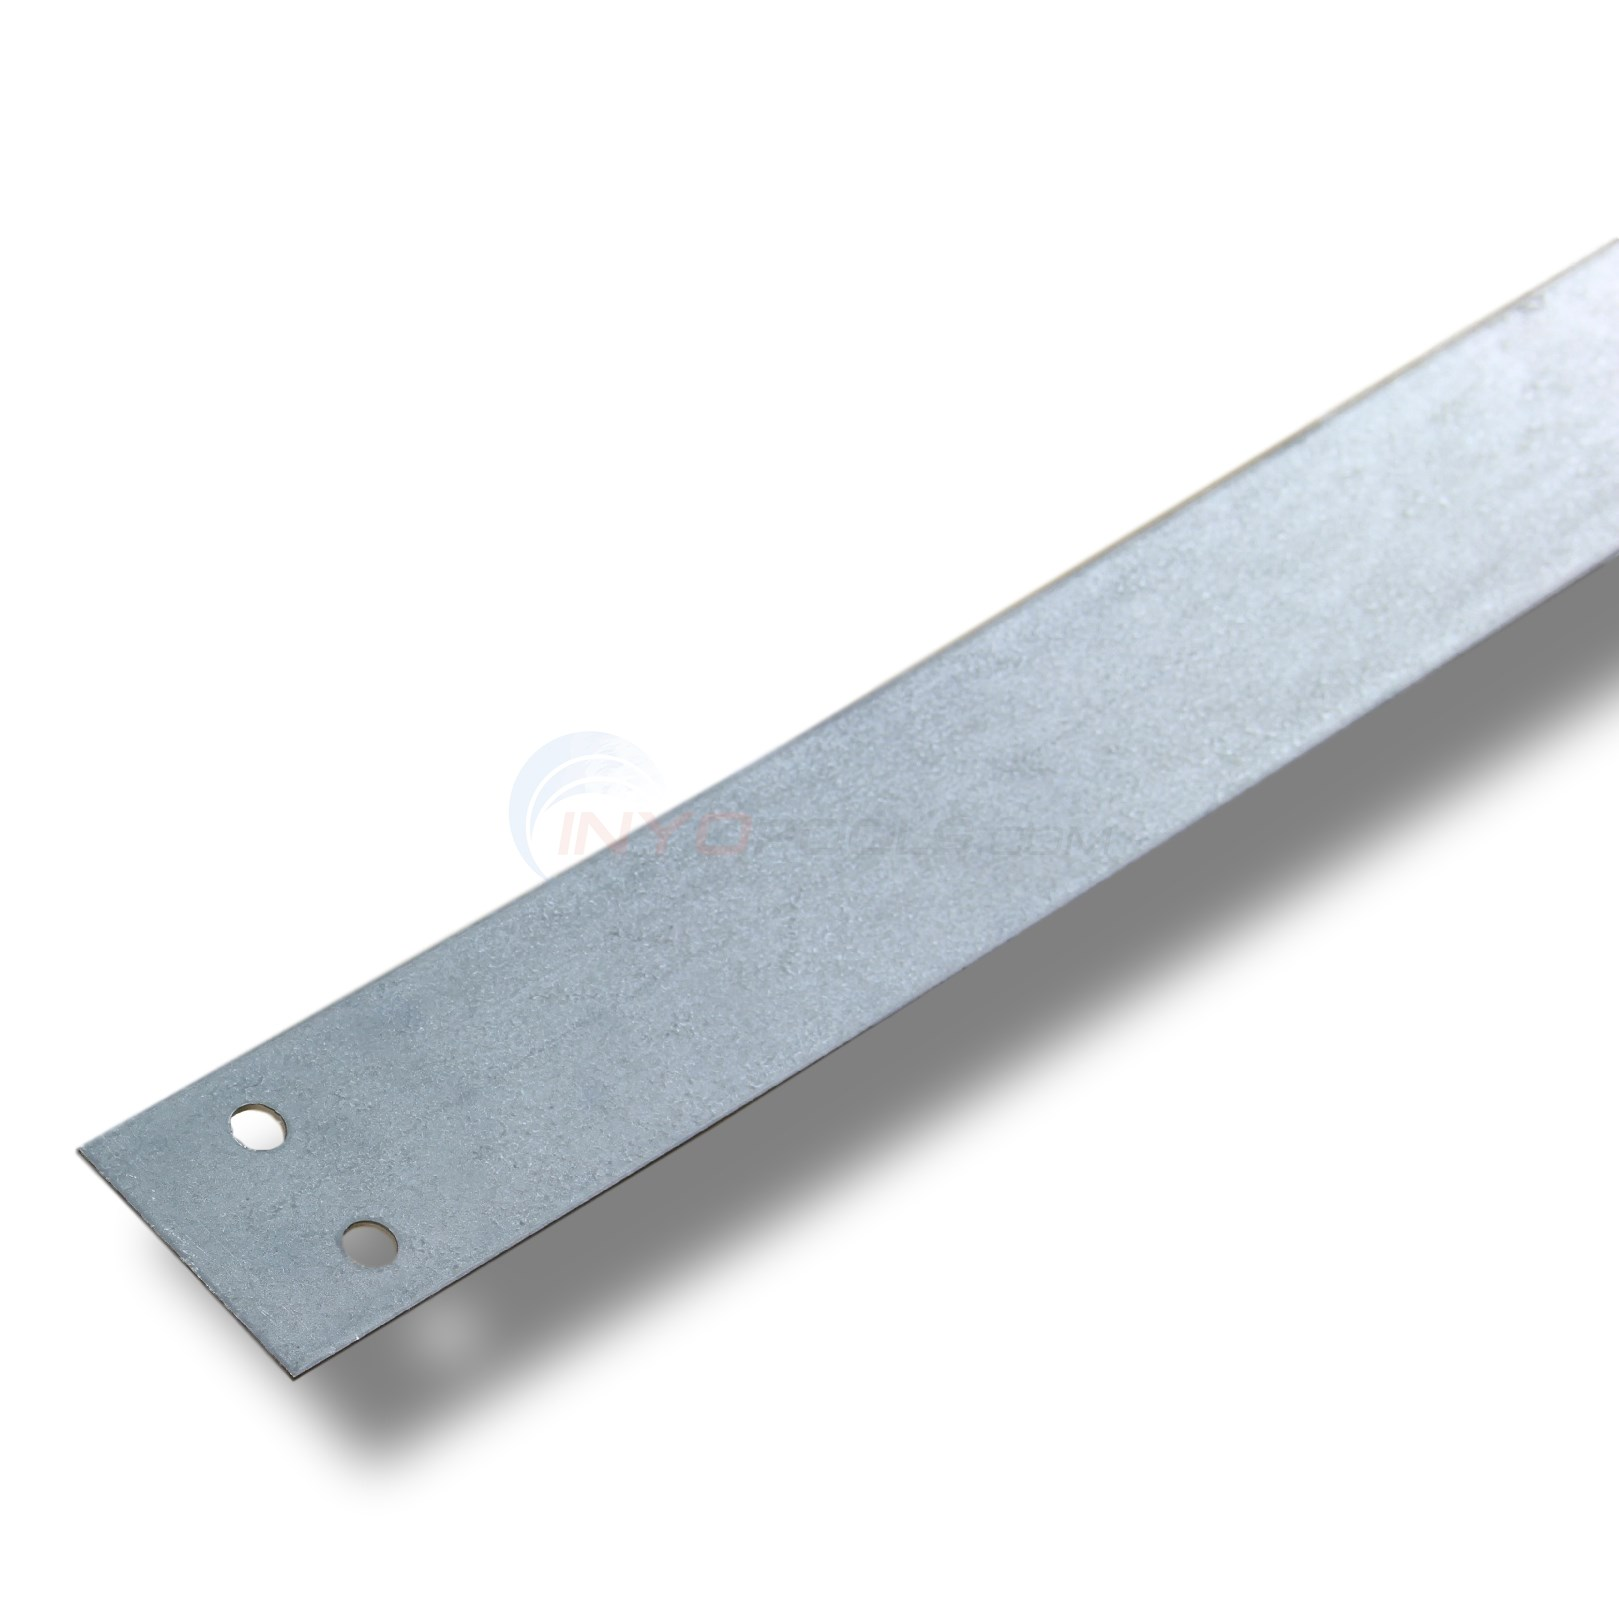 "Wilbar Strap Section 40-11/16"" (Single) - 16725"